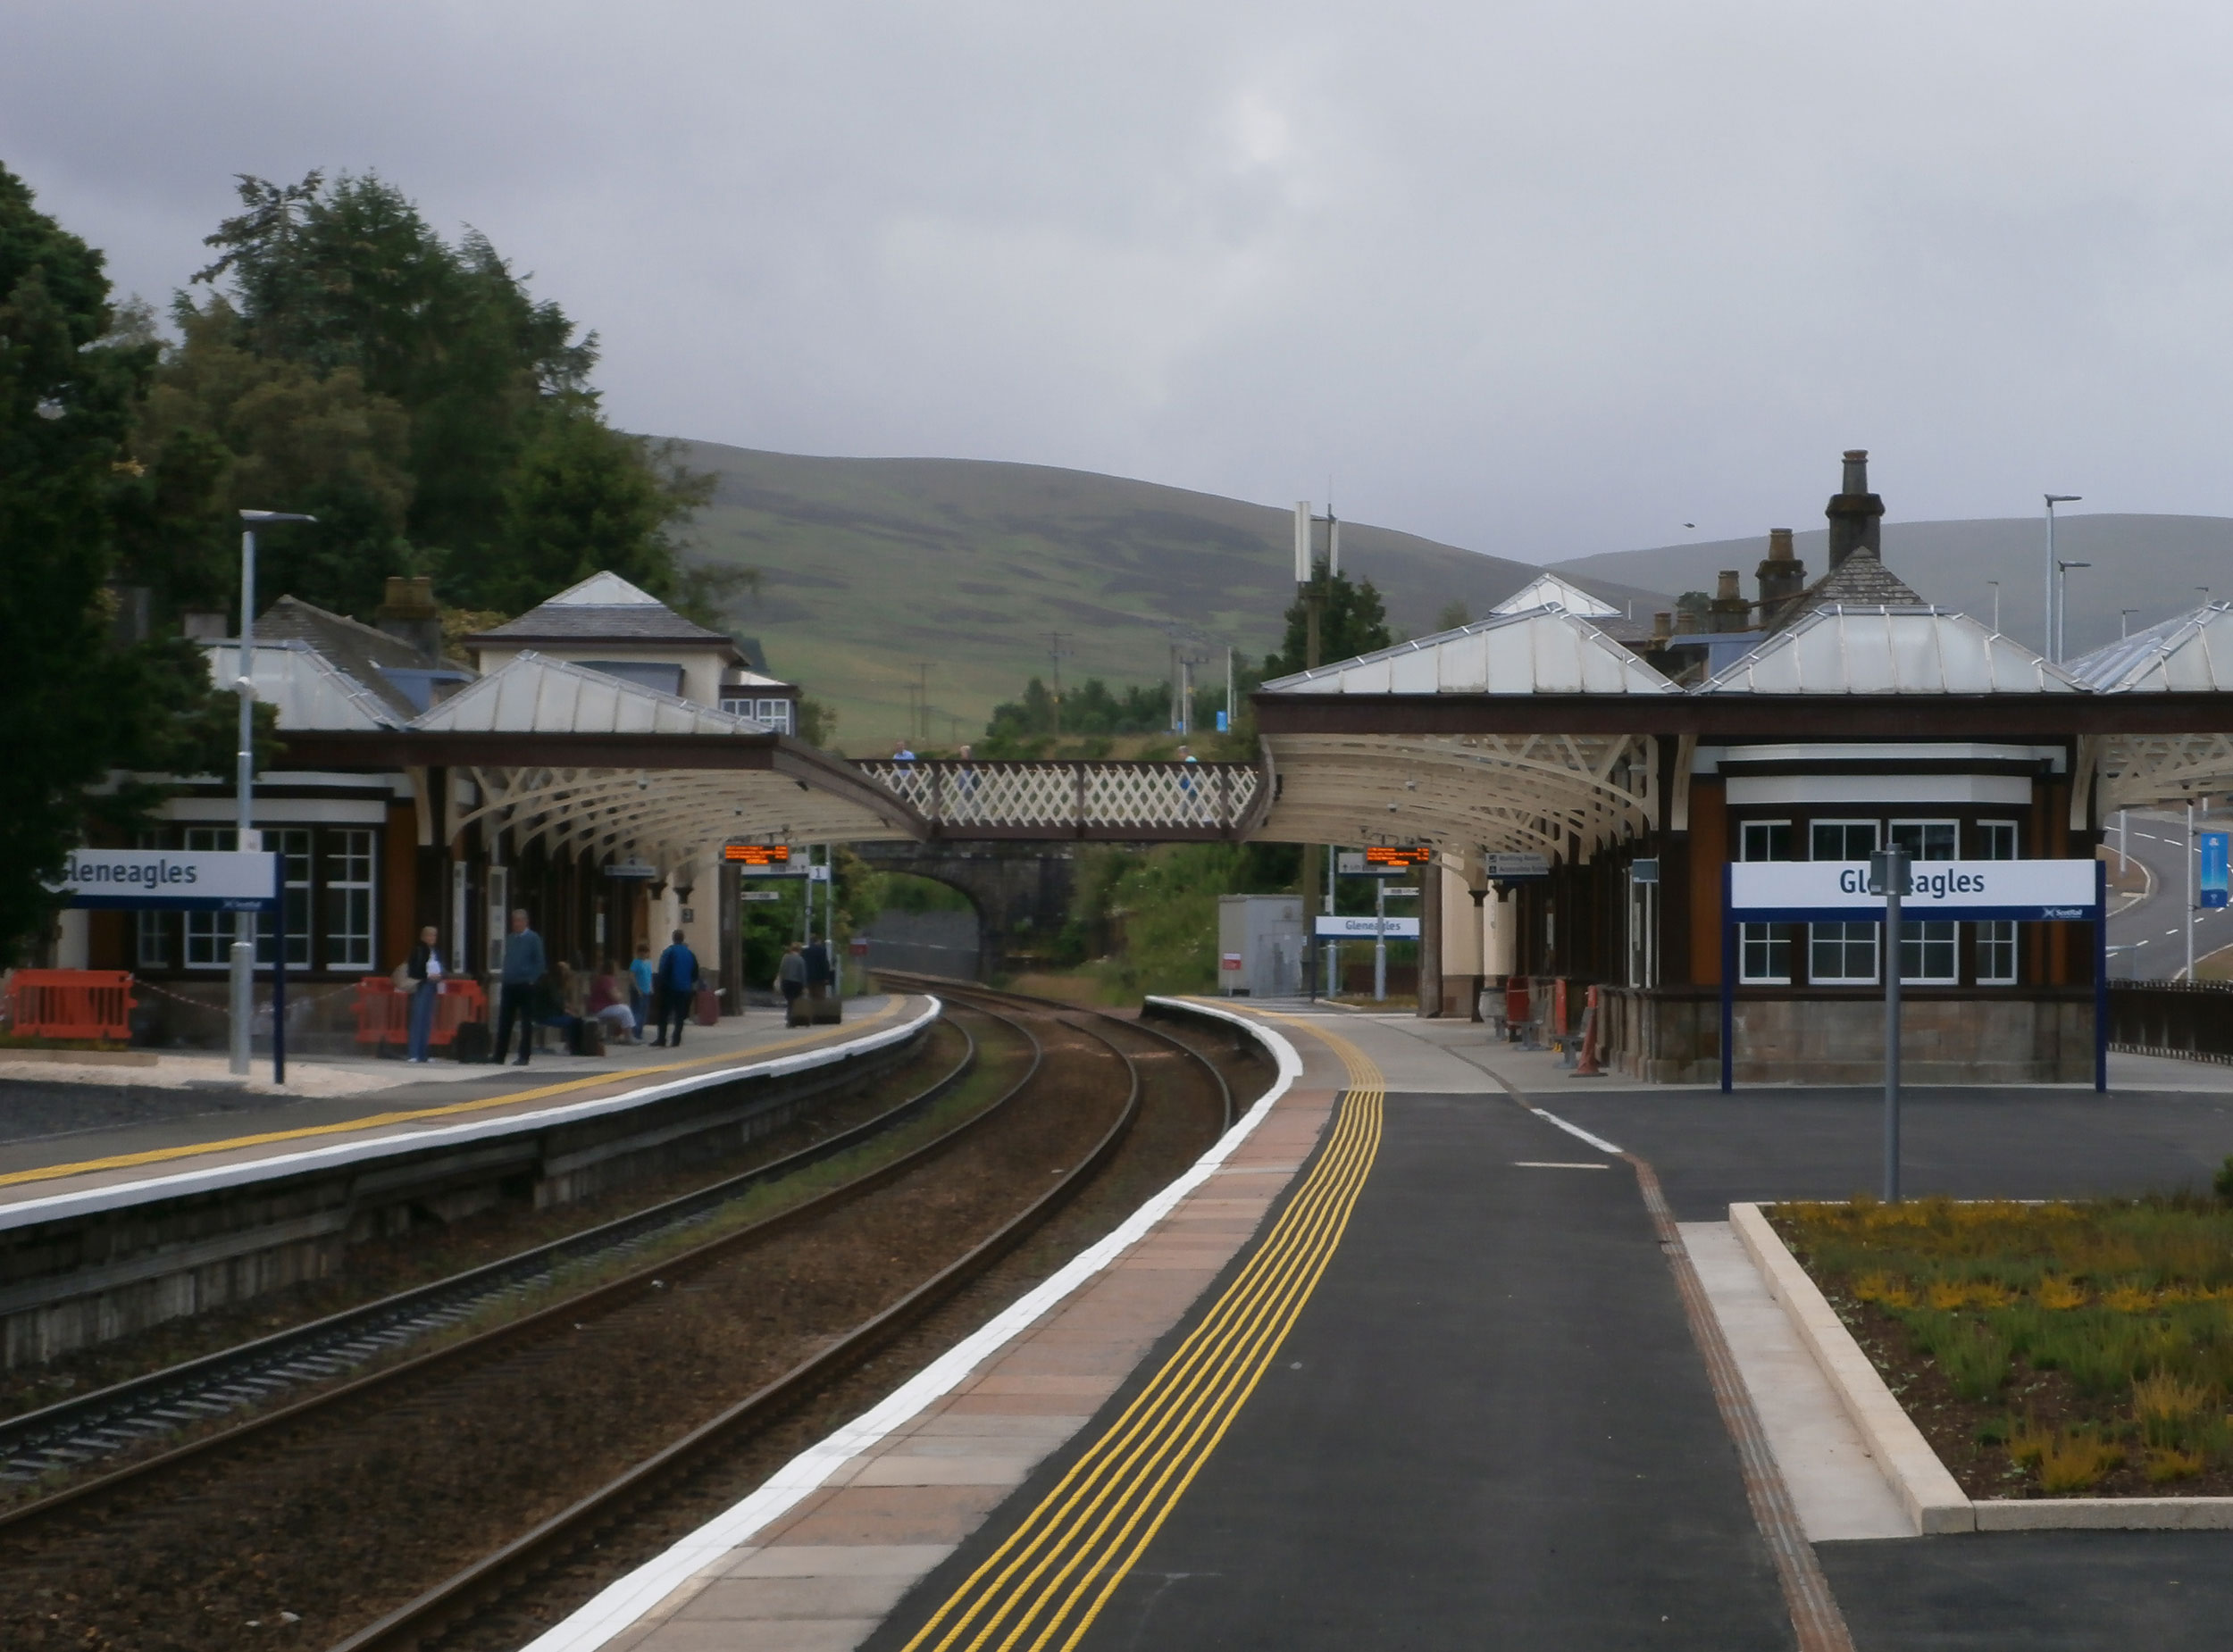 n the beautiful Perthshire countryside, Gleneagles Station is the closest transport link to the world famous Gleneagles hotel, which was the home of 2014's Ryder Cup. the station was fully refurbished and upgraded with SVM providing design advice for the lighting and DDA elements of the works.